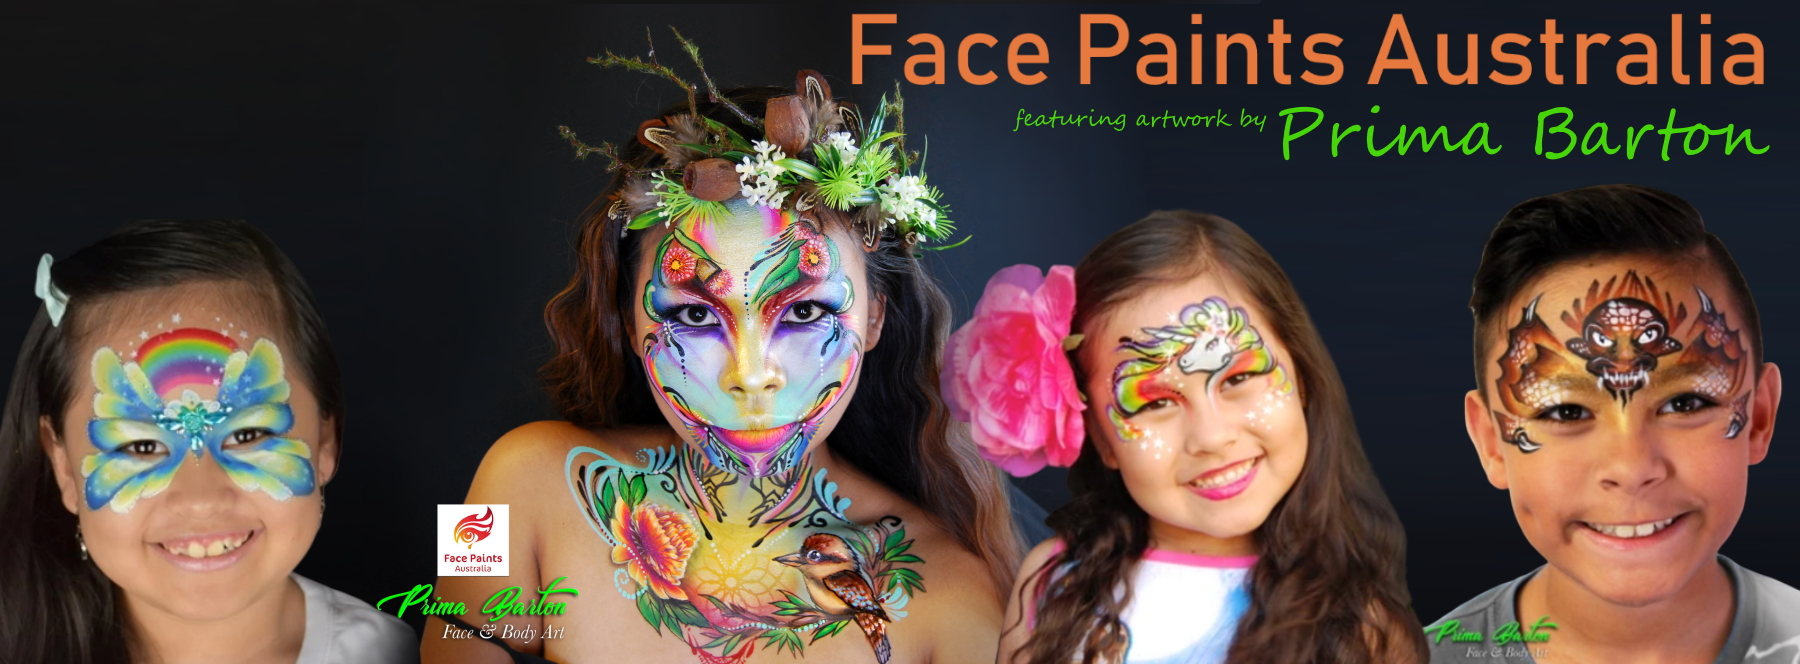 face paints australia prima barton